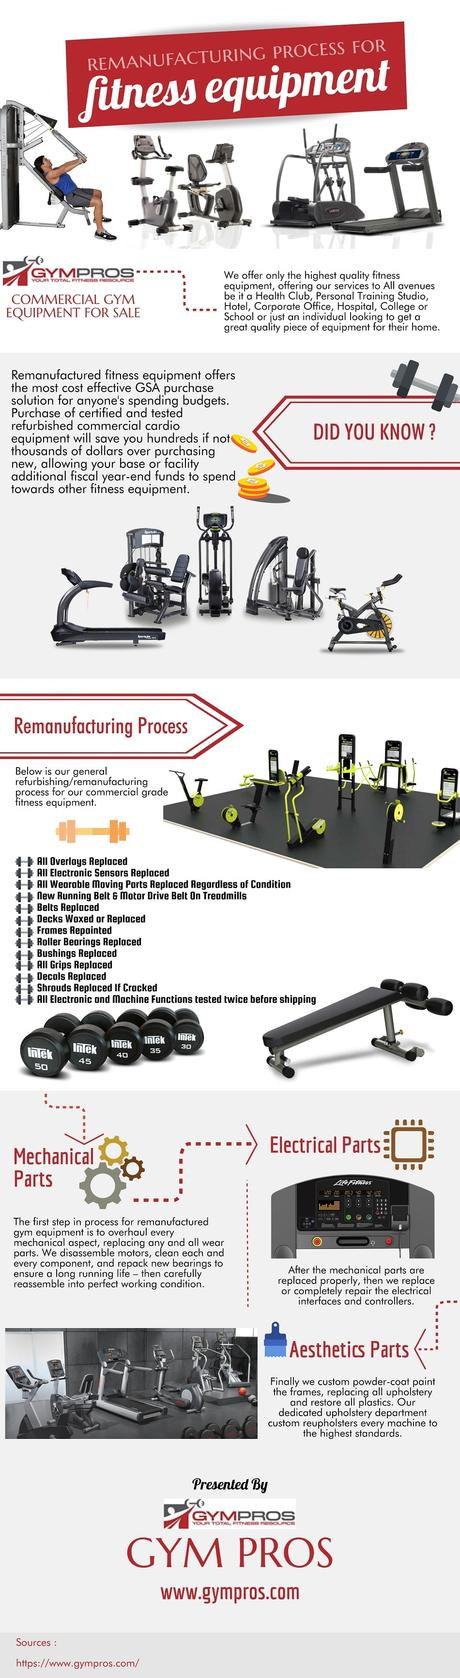 Remanufacturing Process for Fitness Equipment